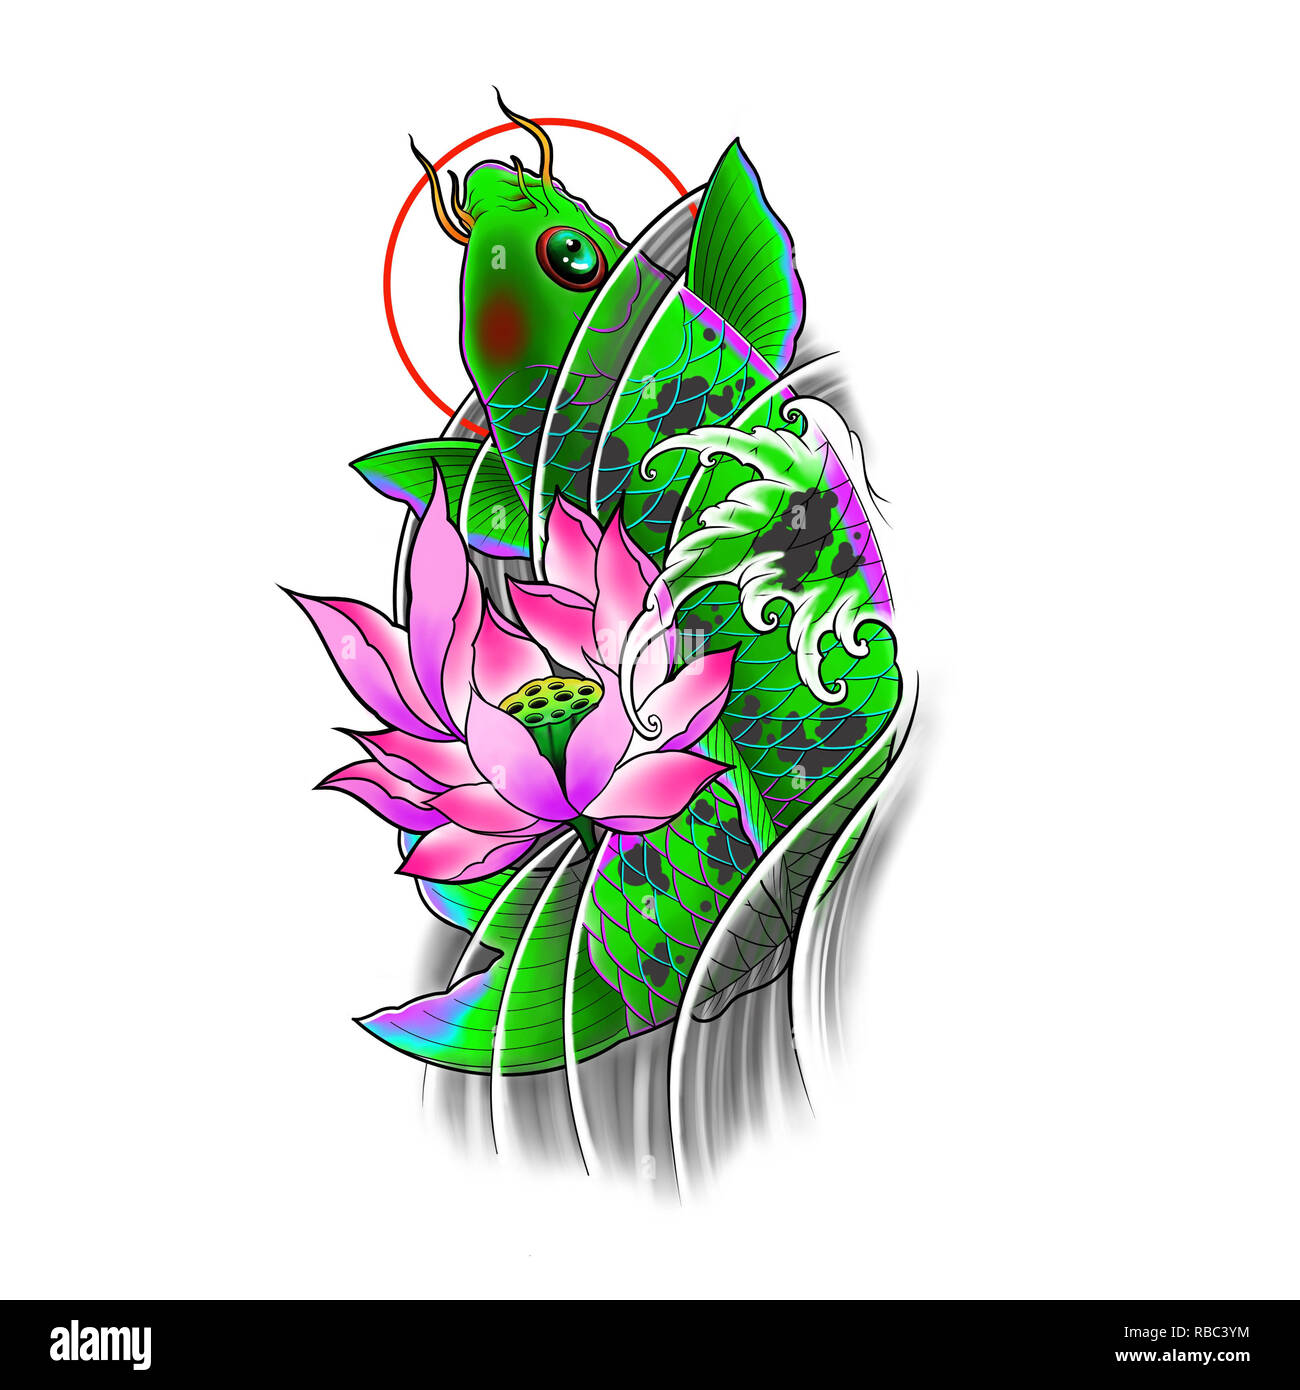 1c7486c416b8c Hand drawn koi fish with lotus flower and water wave tattoo design, Digital  art painting, Japanese tattoo style, tattoo flash image.